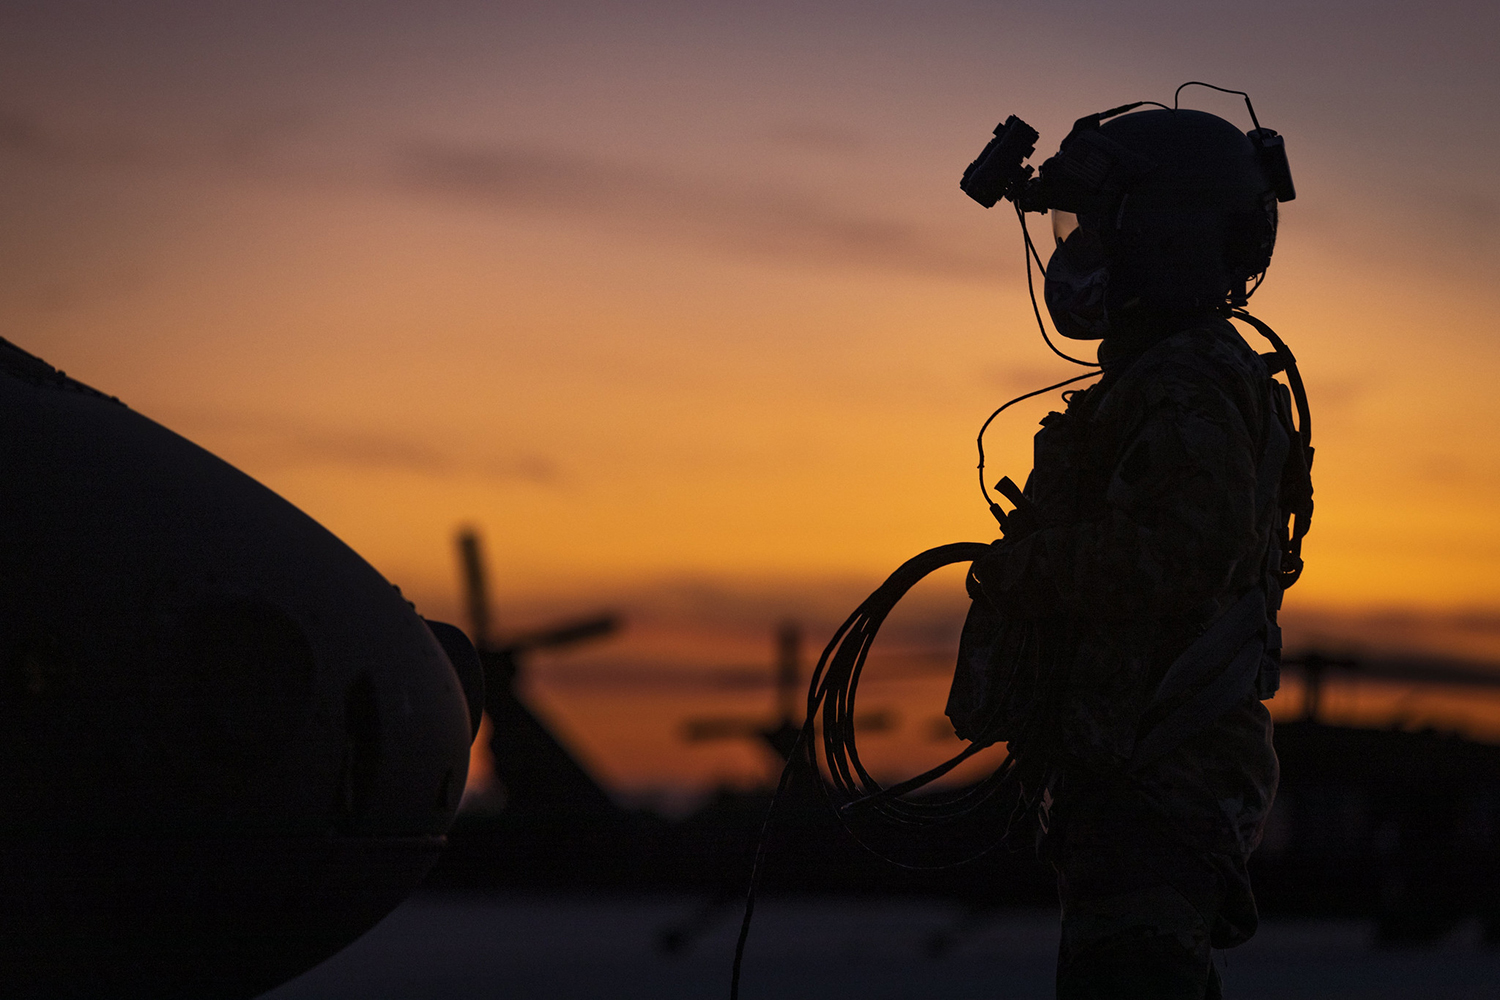 U.S. Army Sgt. Joseph Koszyk, a UH-60M Black Hawk helicopter crew chief with the New Jersey National Guard, prepares his aircraft for a night training mission at Joint Base McGuire-Dix-Lakehurst, N.J., Sept. 18, 2019. (Master Sgt. Matt Hecht/Air National Guard)